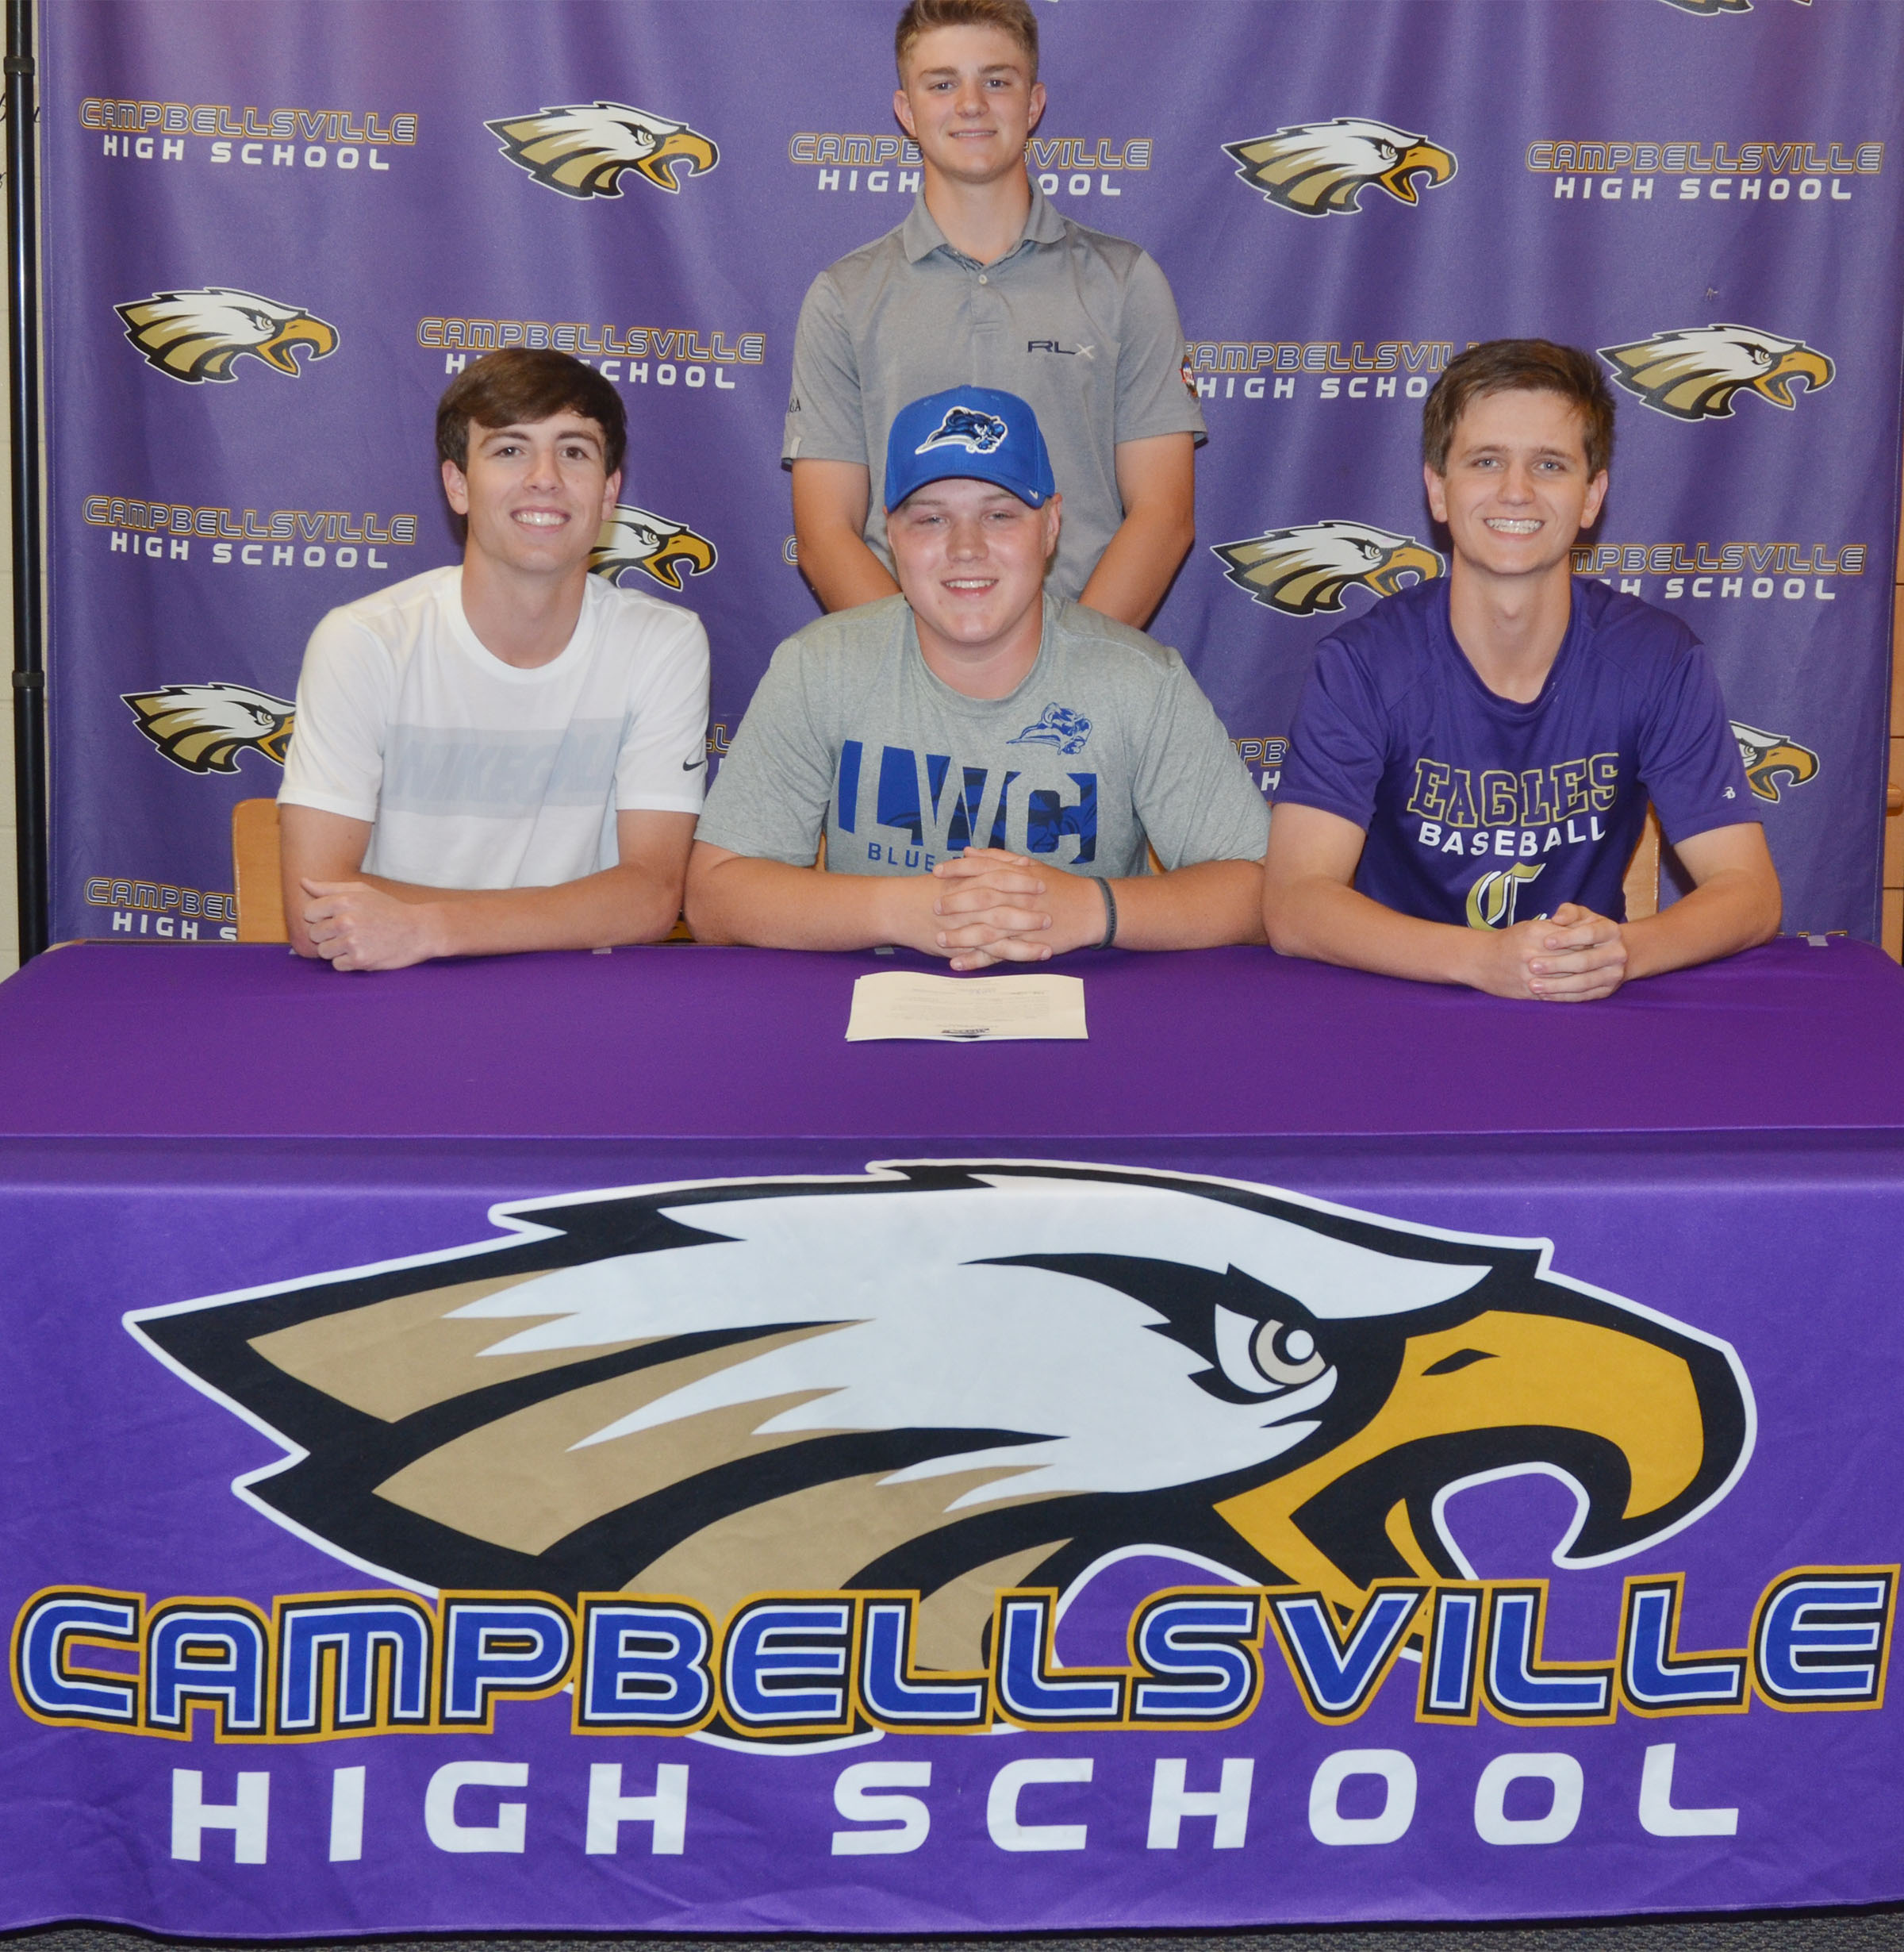 Campbellsville High School senior Noah Wagers will continue his academic and golf career this fall at Lindsey Wilson College. Wagers recently signed his letter of intent in a special ceremony with family, friends, teammates and coaches. He is pictured with, from left, CHS golf teammates Layton Hord and Myles Murrell, sophomores, and, in back, junior Alex Doss.